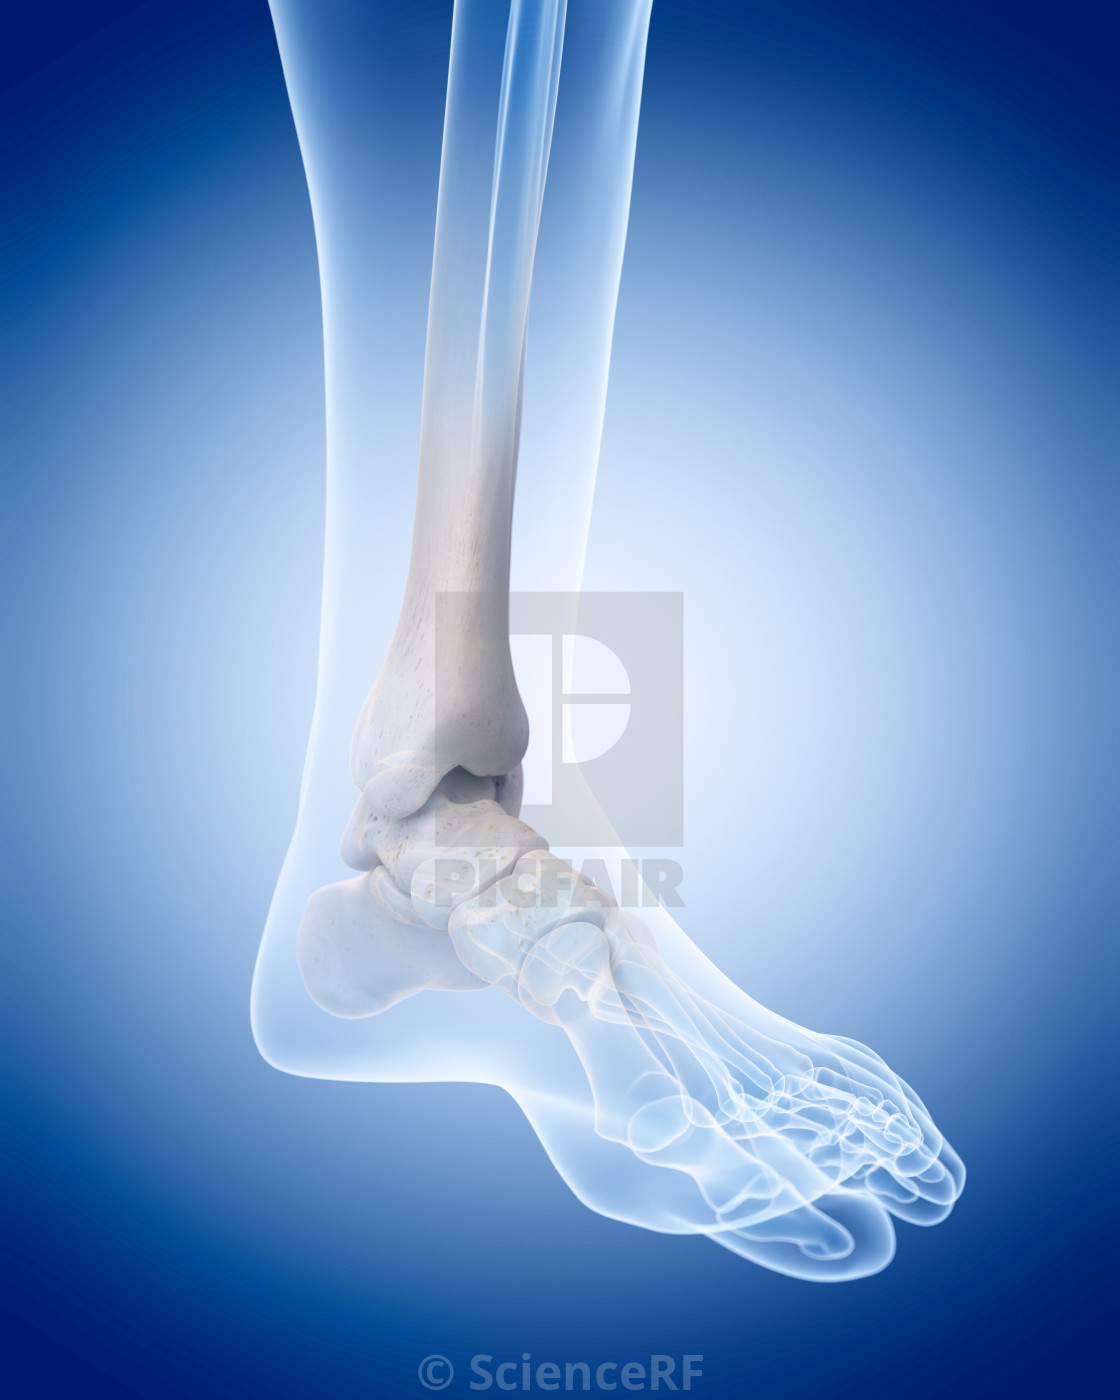 Human Ankle Bones License For 3900 On Picfair